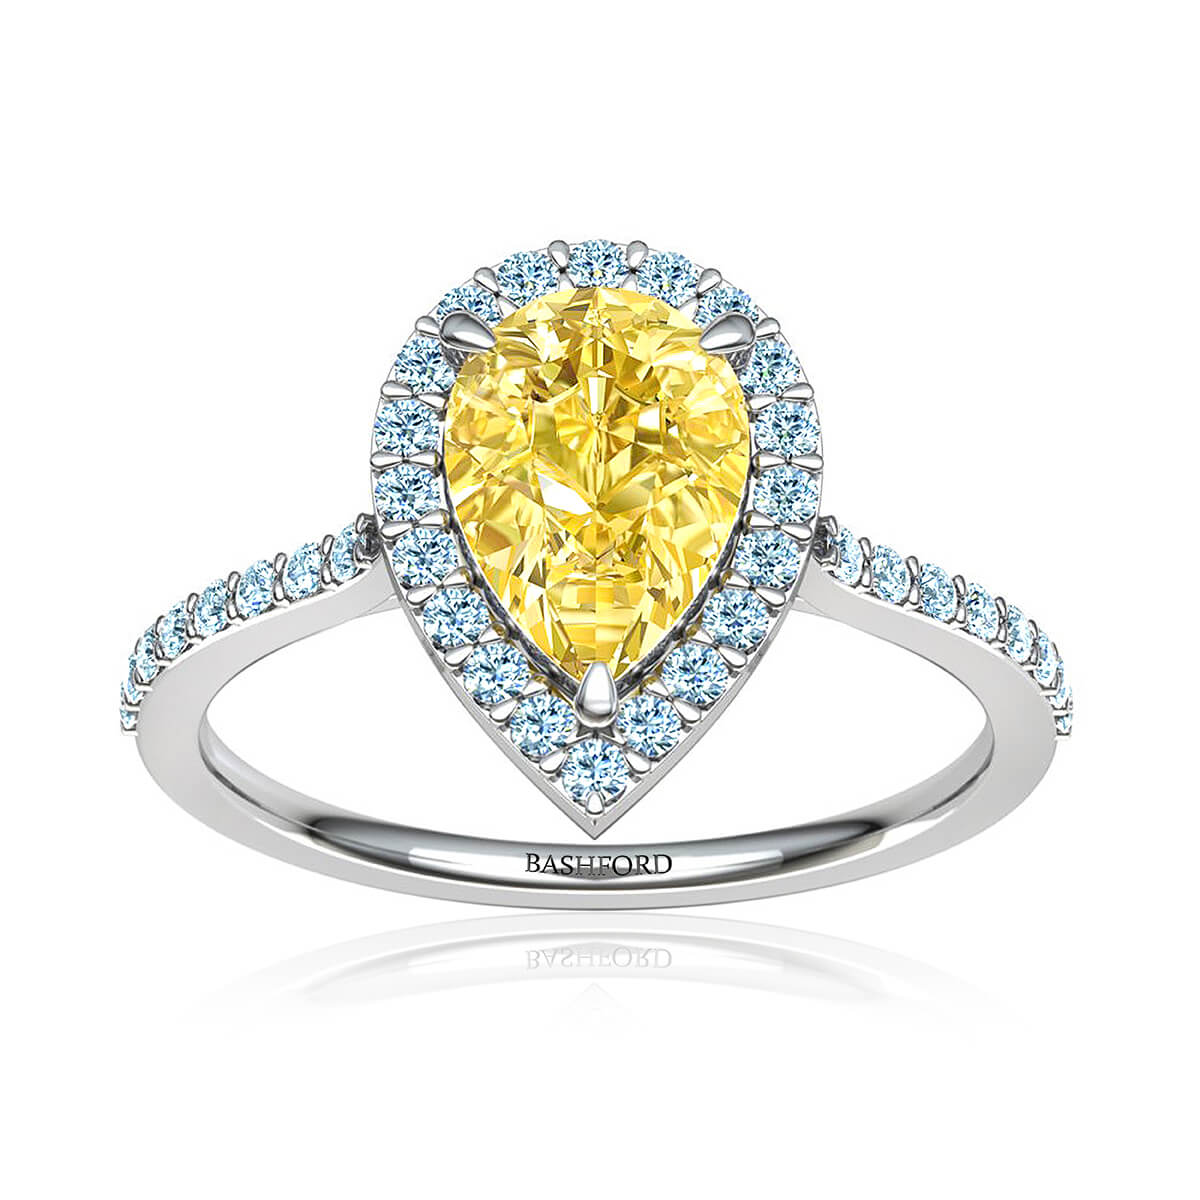 Bashford Jewelry Queen Victoria Diamond Ring